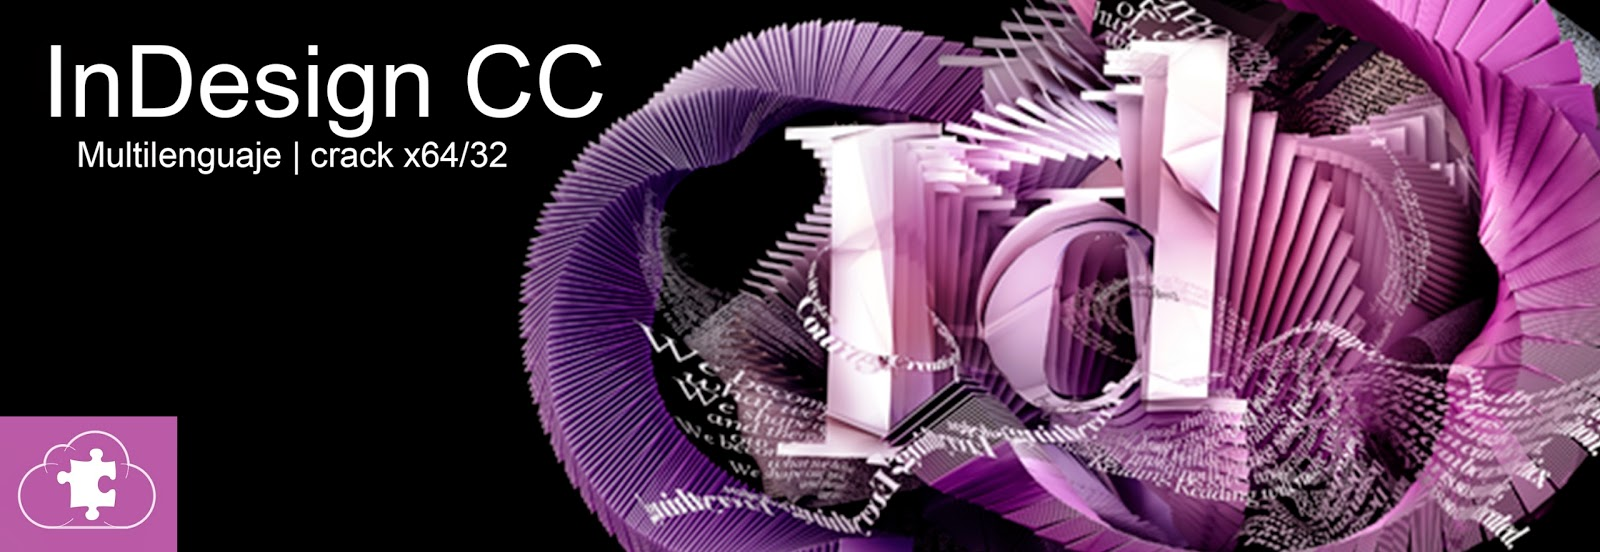 InDesign CC 9.2 | Multilenguaje | crack x64/32